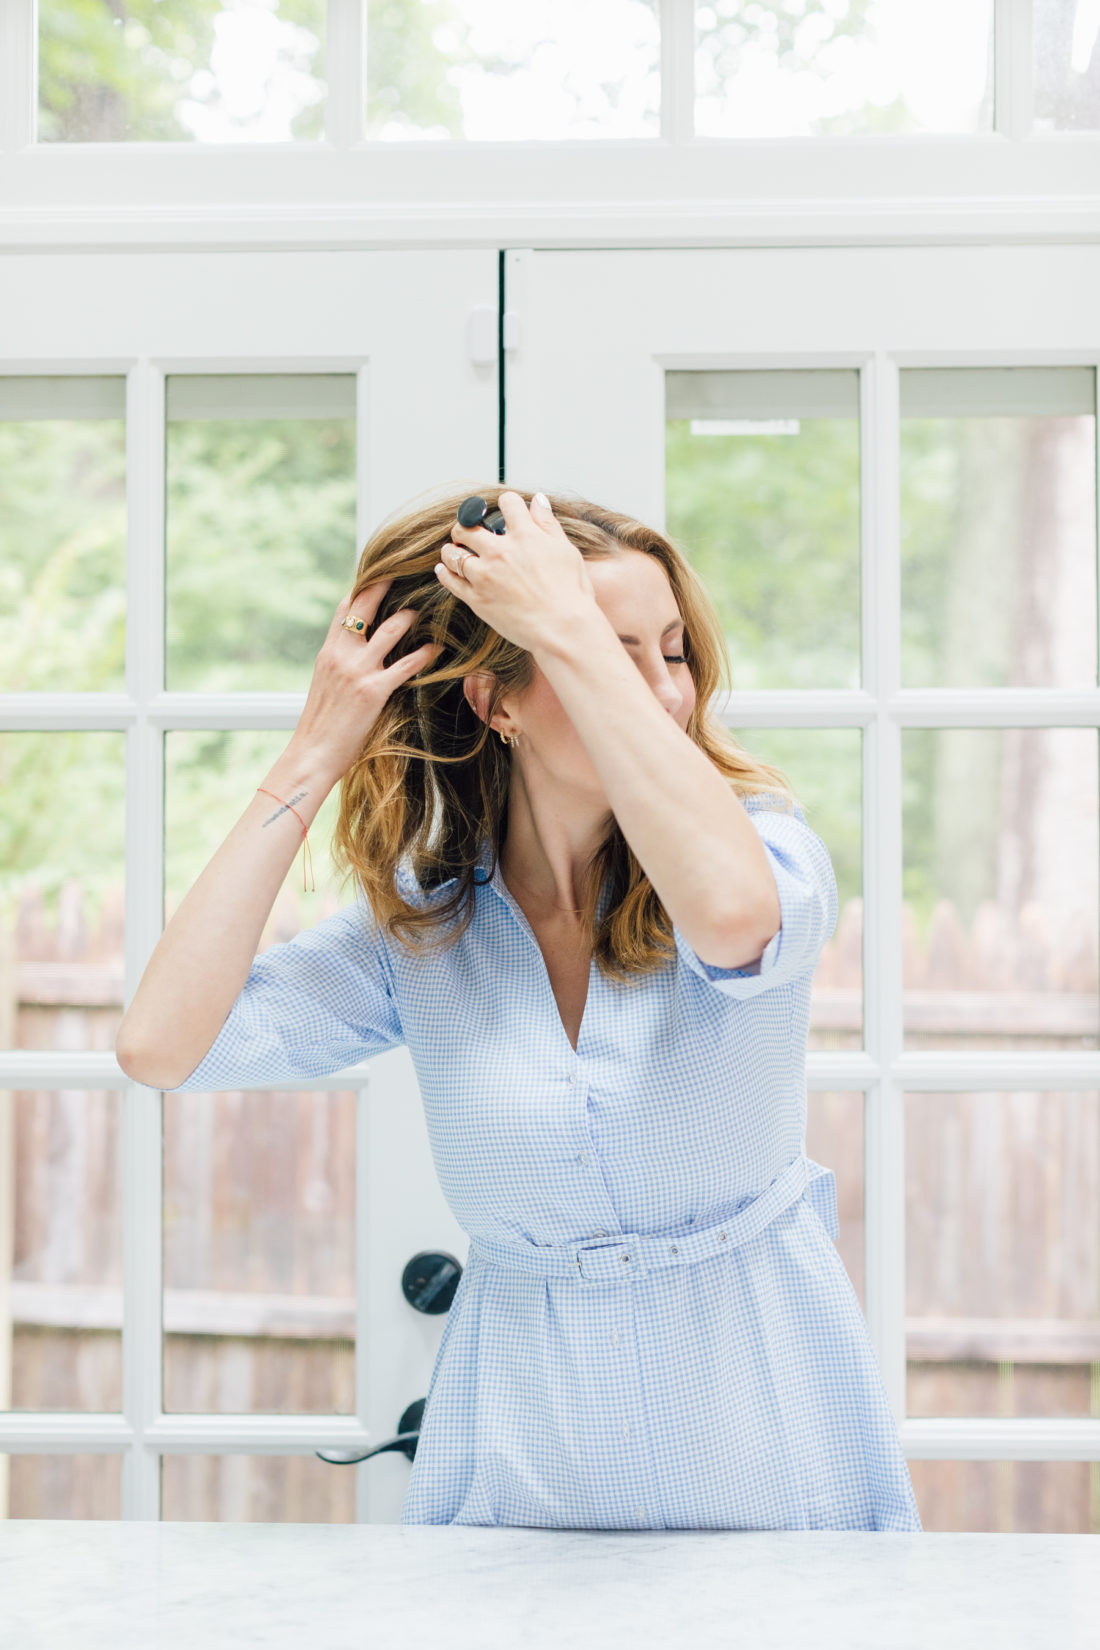 Eva Amurri Martino shares her favorite scalp massage shampoo brush from Heeta